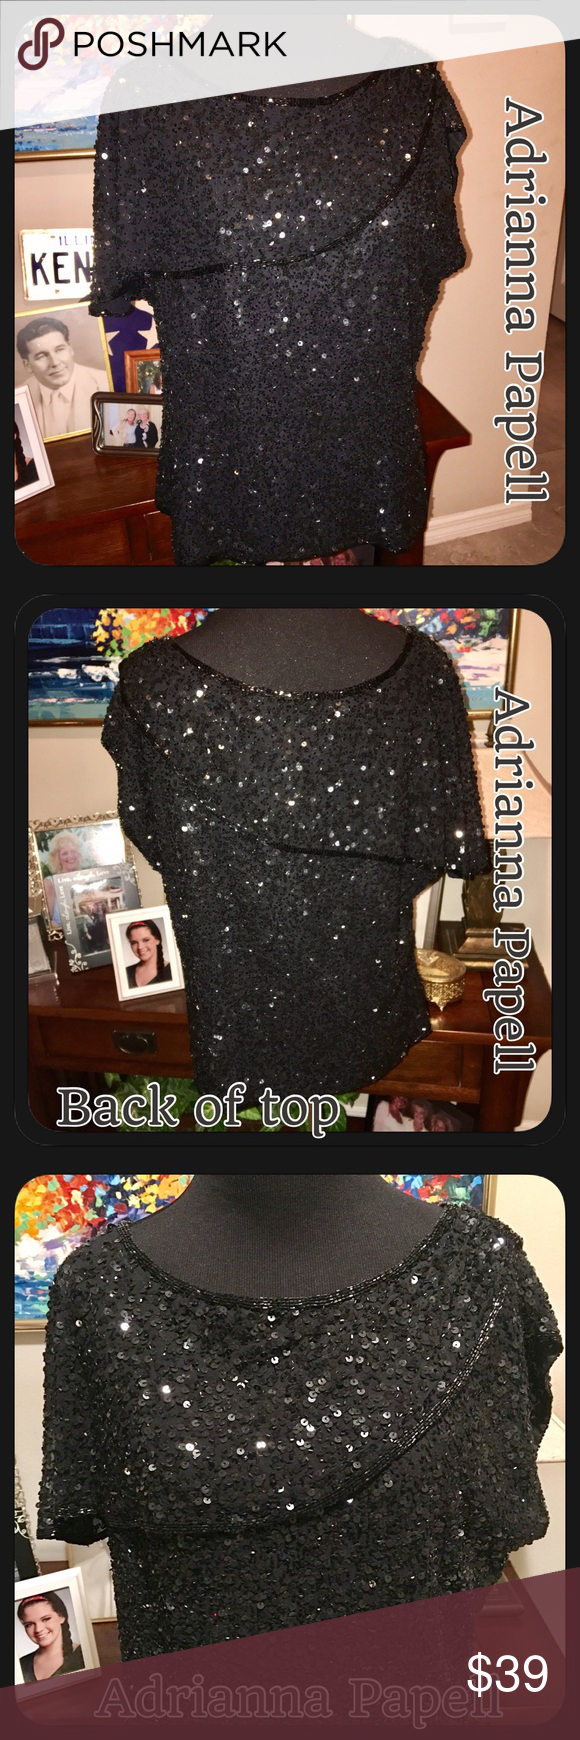 🌷Adrianna Papell Occasions Black Sequin Top sz 14 Beautiful like new Adrianna Papell black Sequin top, sleeves are like cap or sleeveless but has drape that's connect & covers top of right arm. See pic 4 for pic of the drape close up. Beaded neckline. Sequins all over & intact! Front & back! (Pic 2 is back) gorgeous! Would be great with dress pants or a skirt for a special occasion! Adrianna Papell Tops